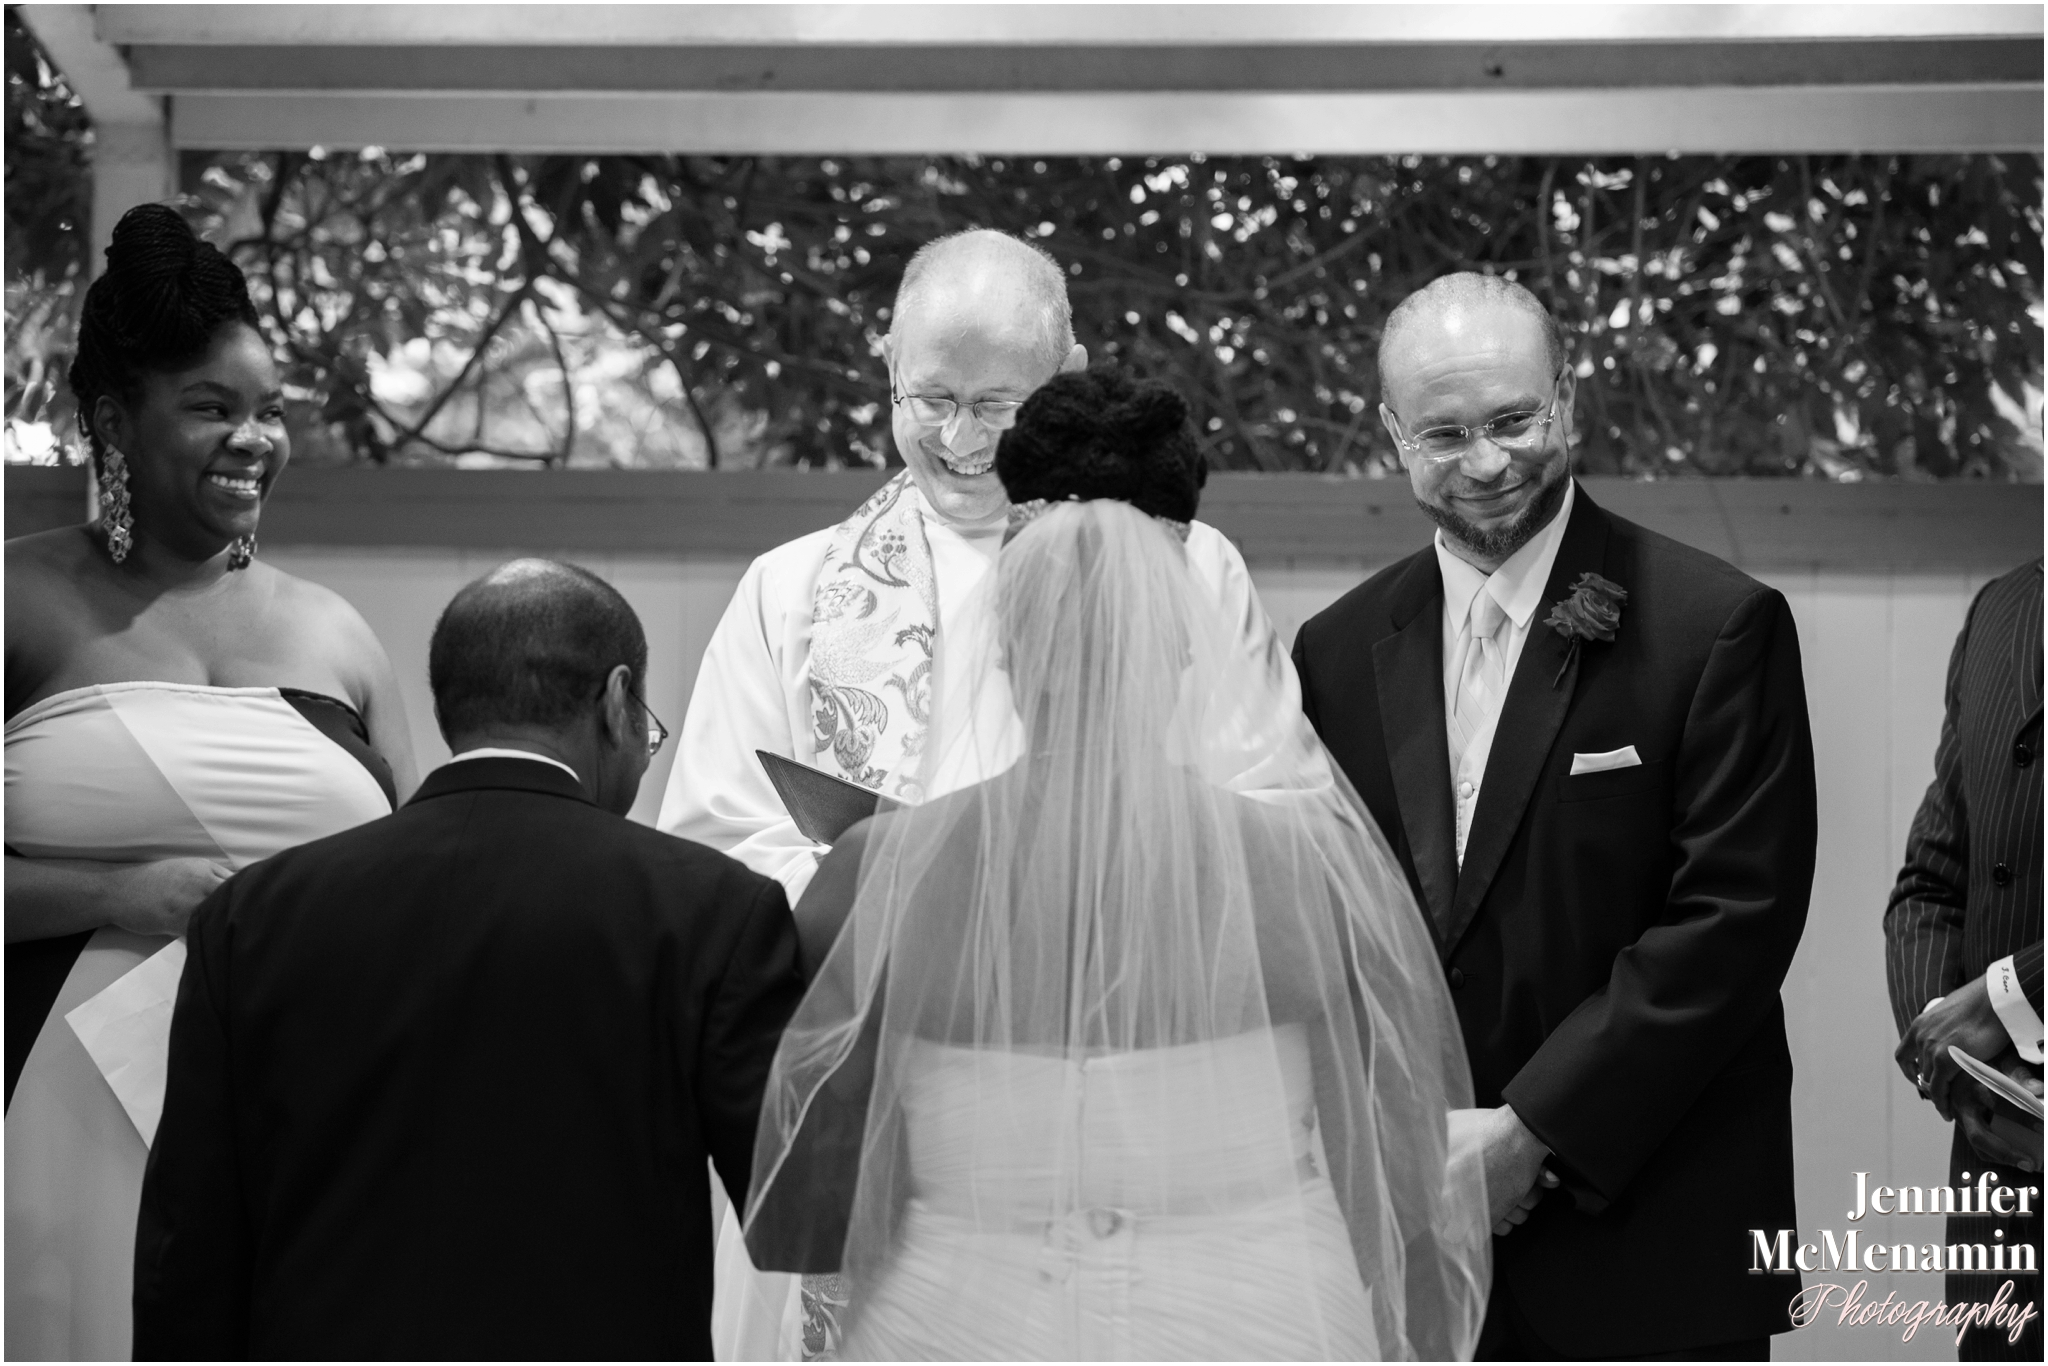 010_JarmonTurner_00353bw-0076_JenniferMcMenaminPhotography_Chase-Court_Gertrudes-at-the-Baltimore-Museum-Of-Art_Gertrudes-at-the-BMA_Baltimore-wedding-photography_Baltimore-wedding-photographer